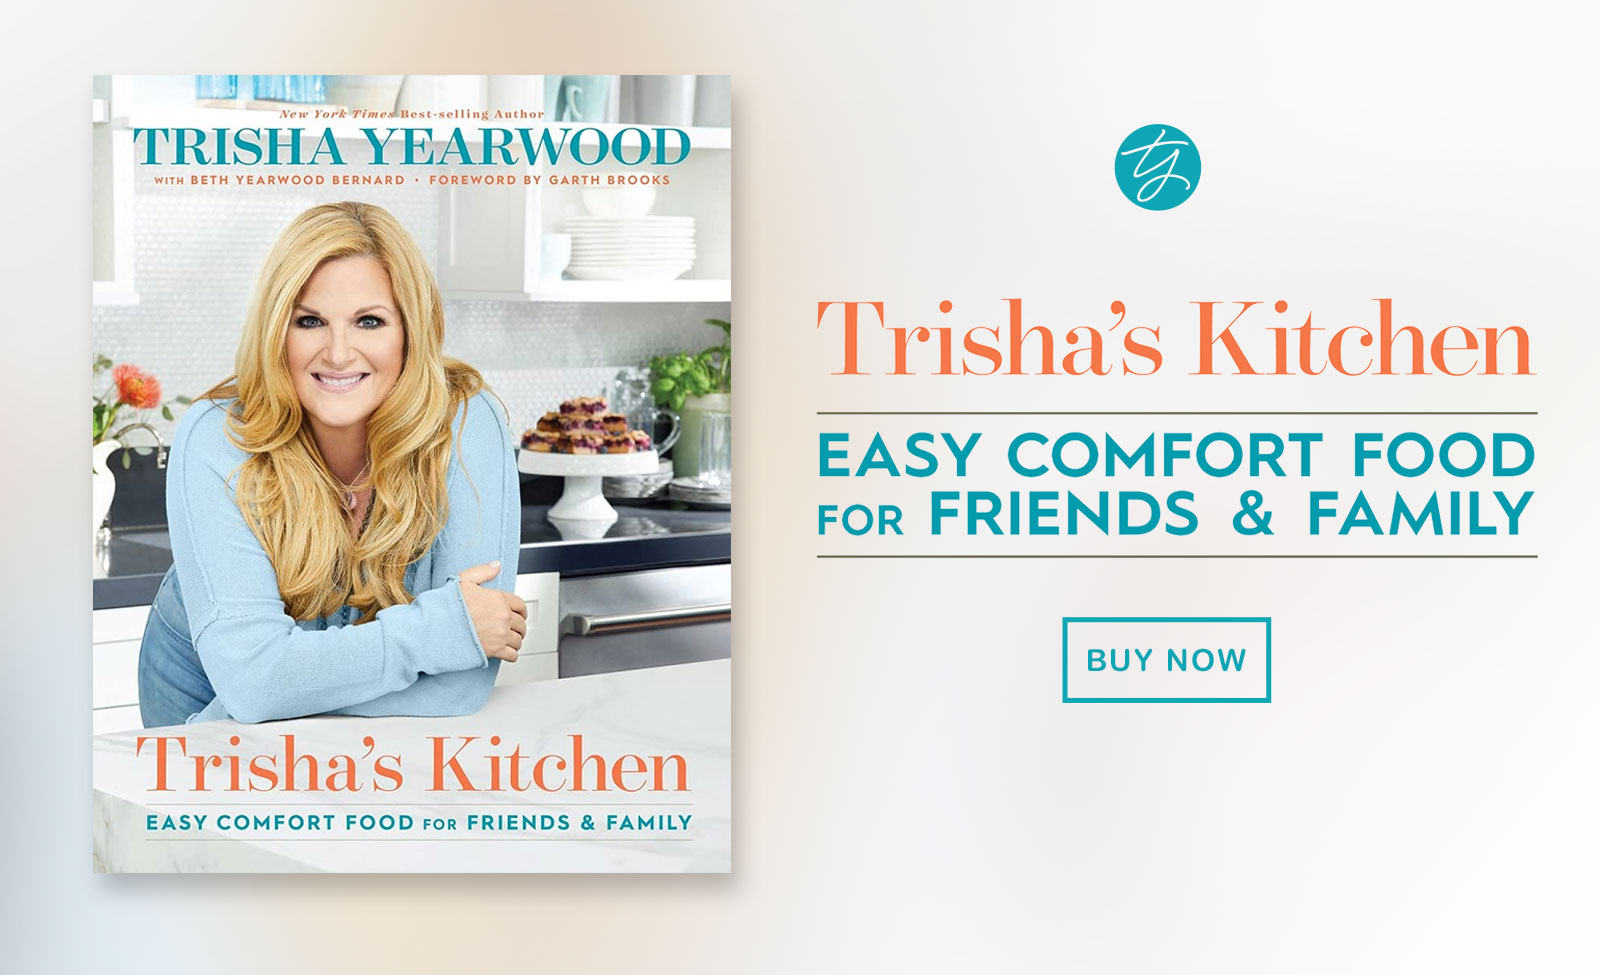 Trisha's Kitchen - Easy Comfort Food For Friends & Family